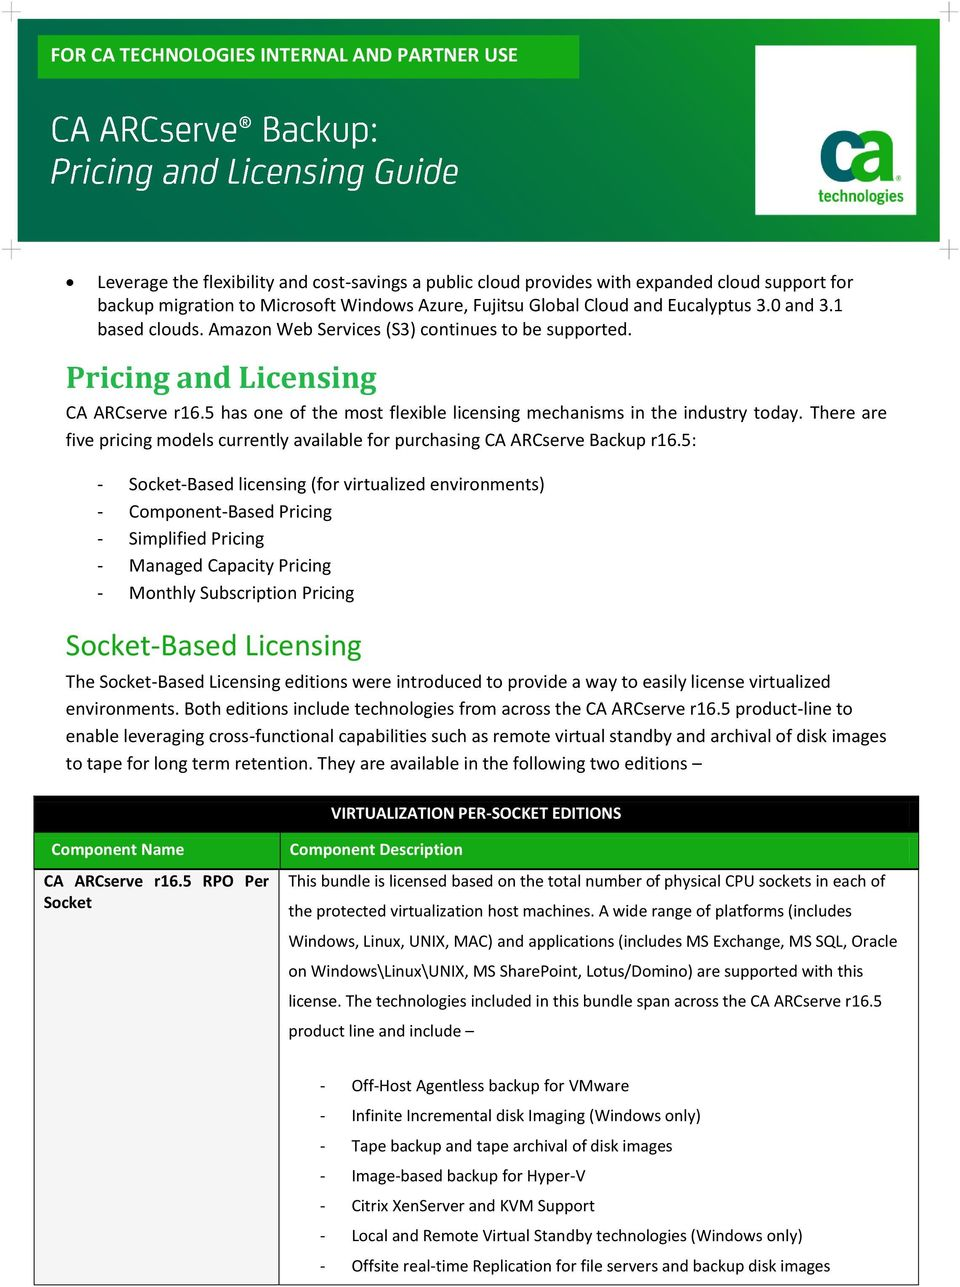 There are five pricing models currently available for purchasing : - Socket-Based licensing (for virtualized environments) - Component-Based Pricing - Simplified Pricing - Managed Capacity Pricing -